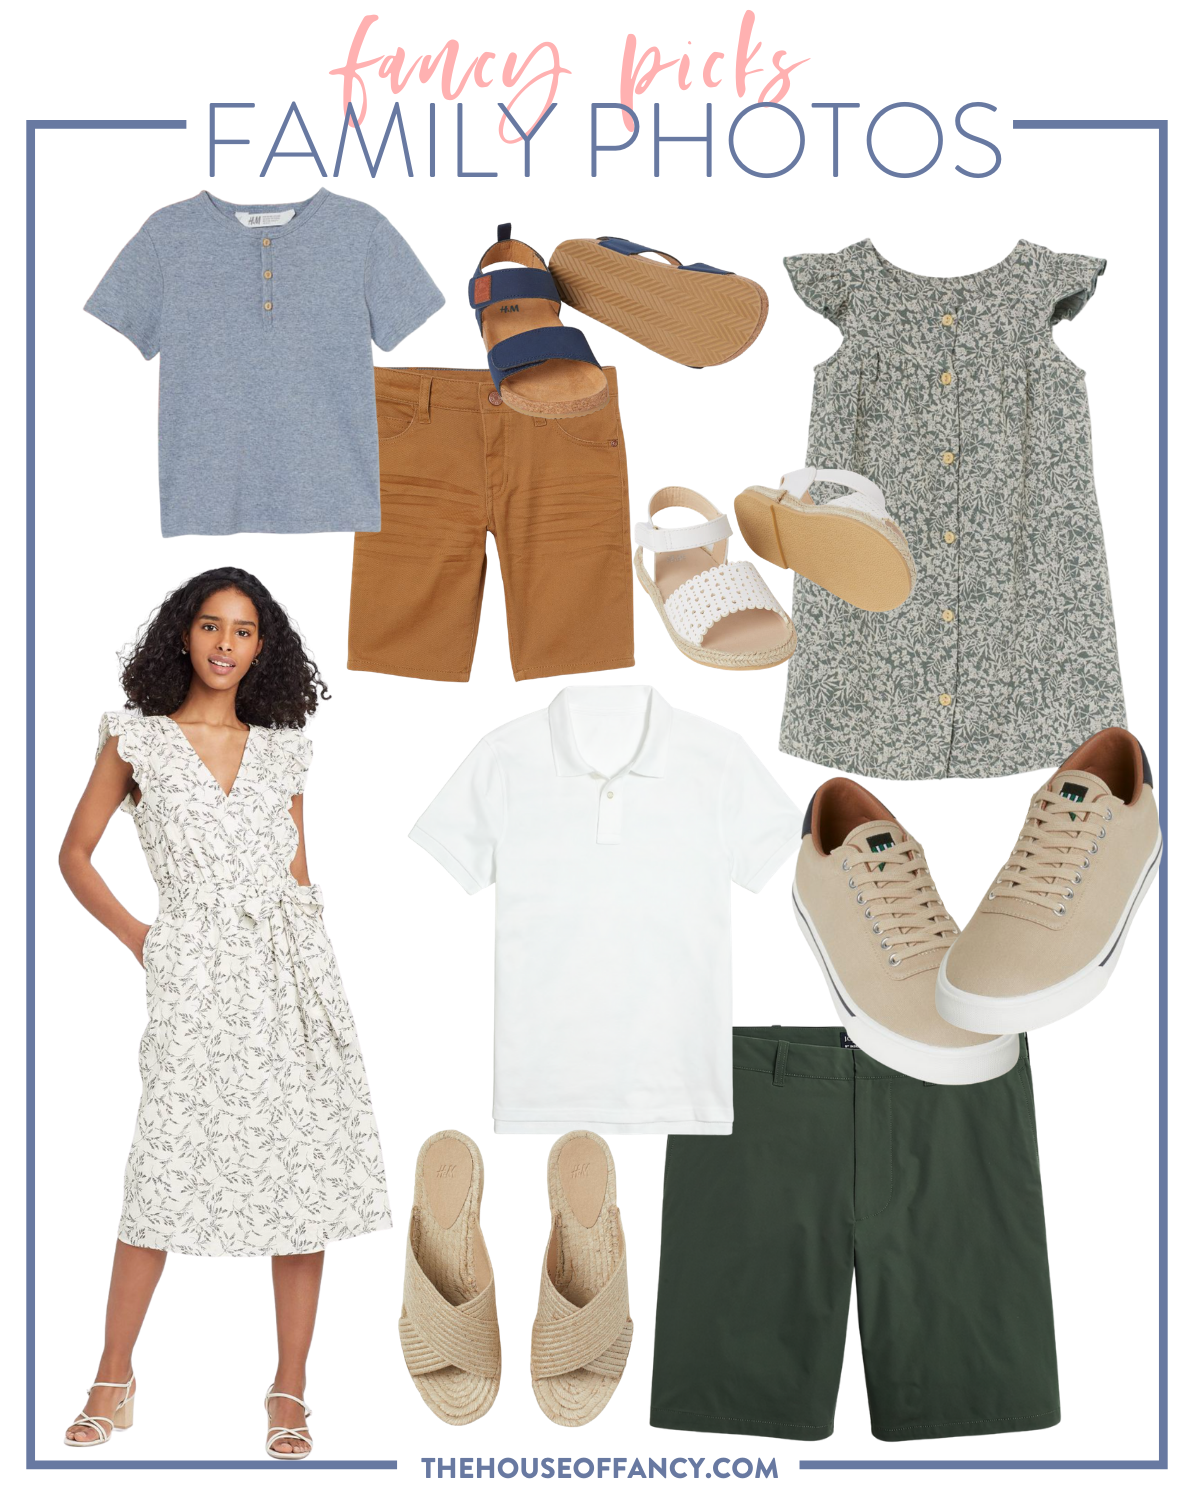 Family Photo Outfits by popular Houston fashion blog, The House of Fancy: collage image of green shorts, tan espadrilles, black and white floral print flutter sleeve midi dress, white polo shirt, tan sneakers, grey floral print button up shirt, white strap espadrille sandals, tan shorts, blue shirt, and blue strap sandals.